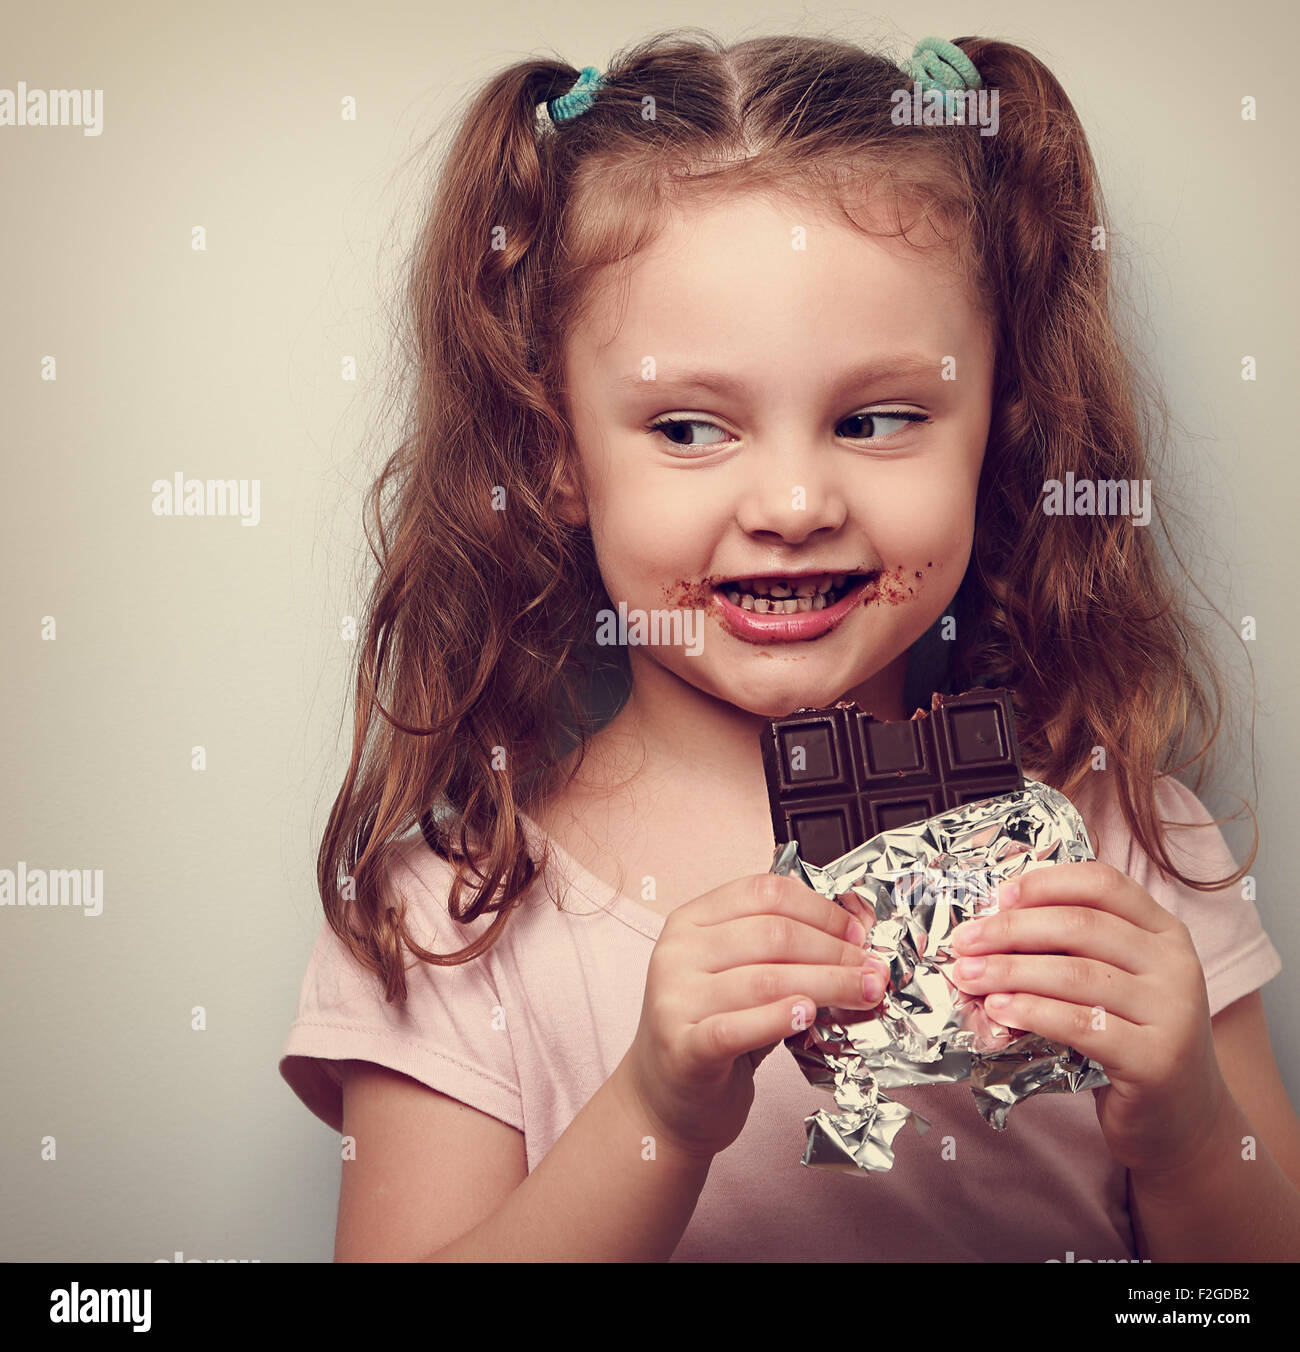 curious cute kid girl eating dark chocolate and looking fun. closeup